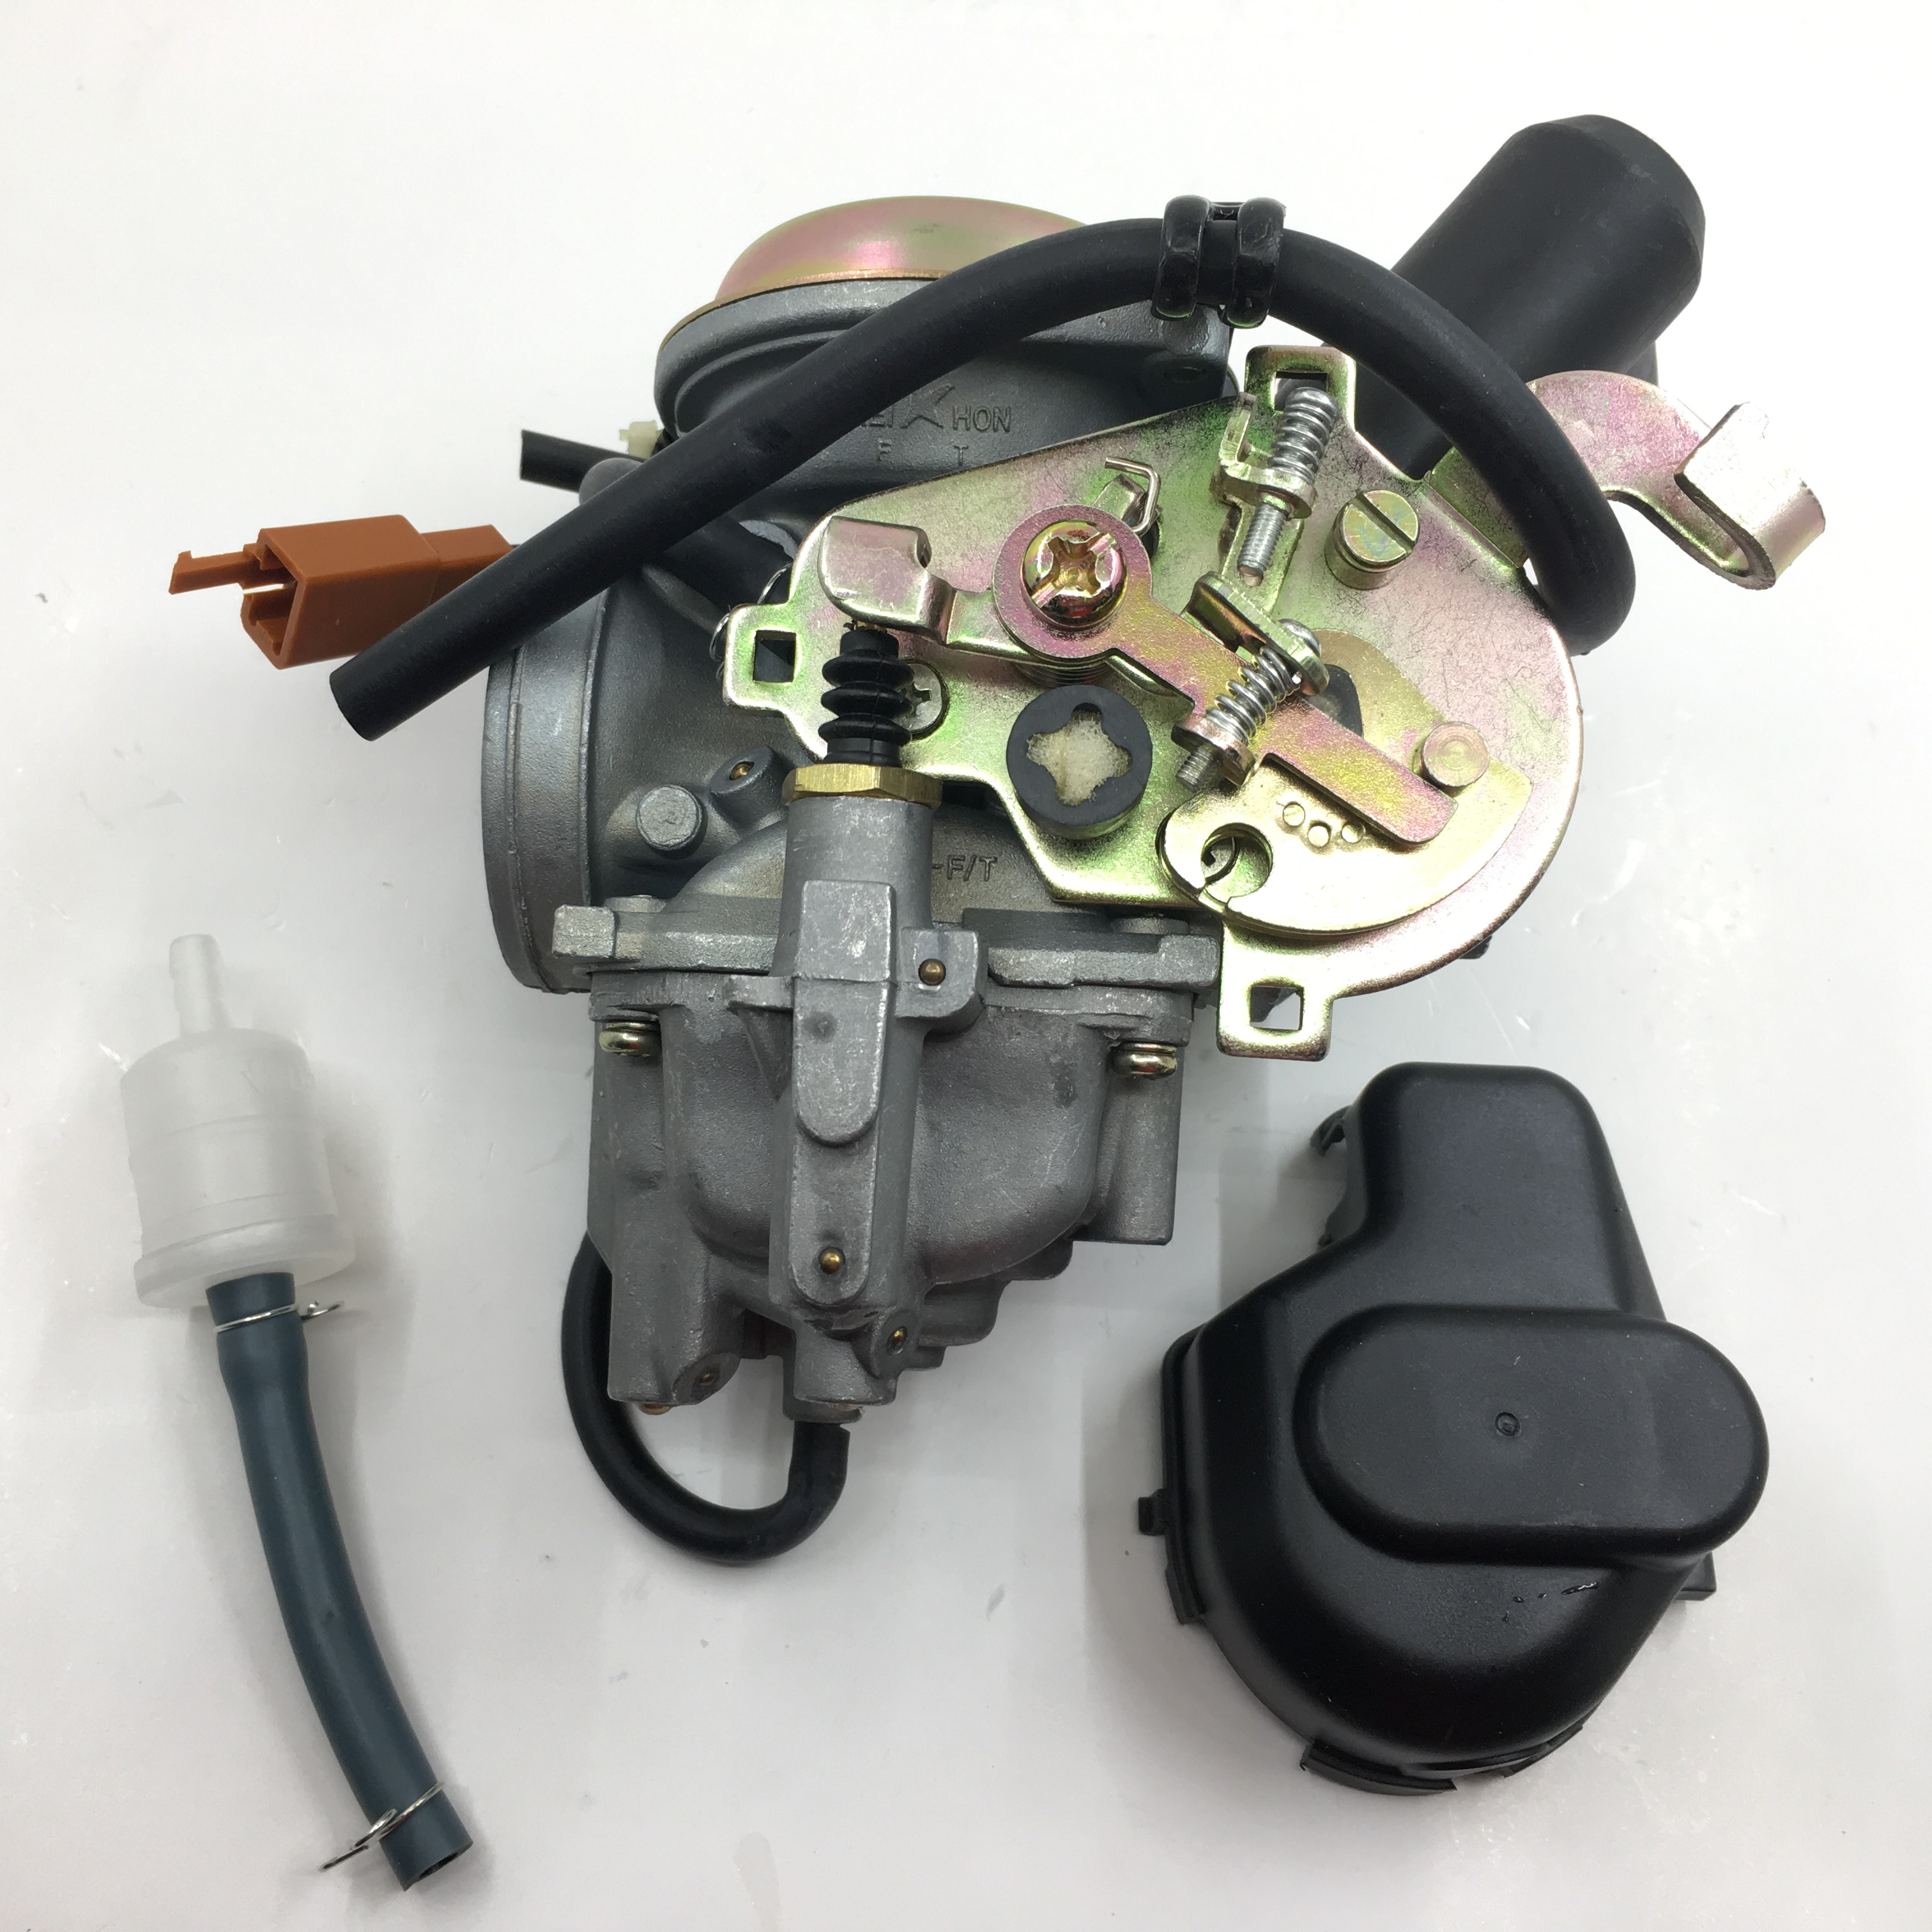 SherryBerg Carburettor Carburetor Carb Carby Carburador For Suzuki AN 125 150 AN125 AN150 Burgman Vergaser Top Quality